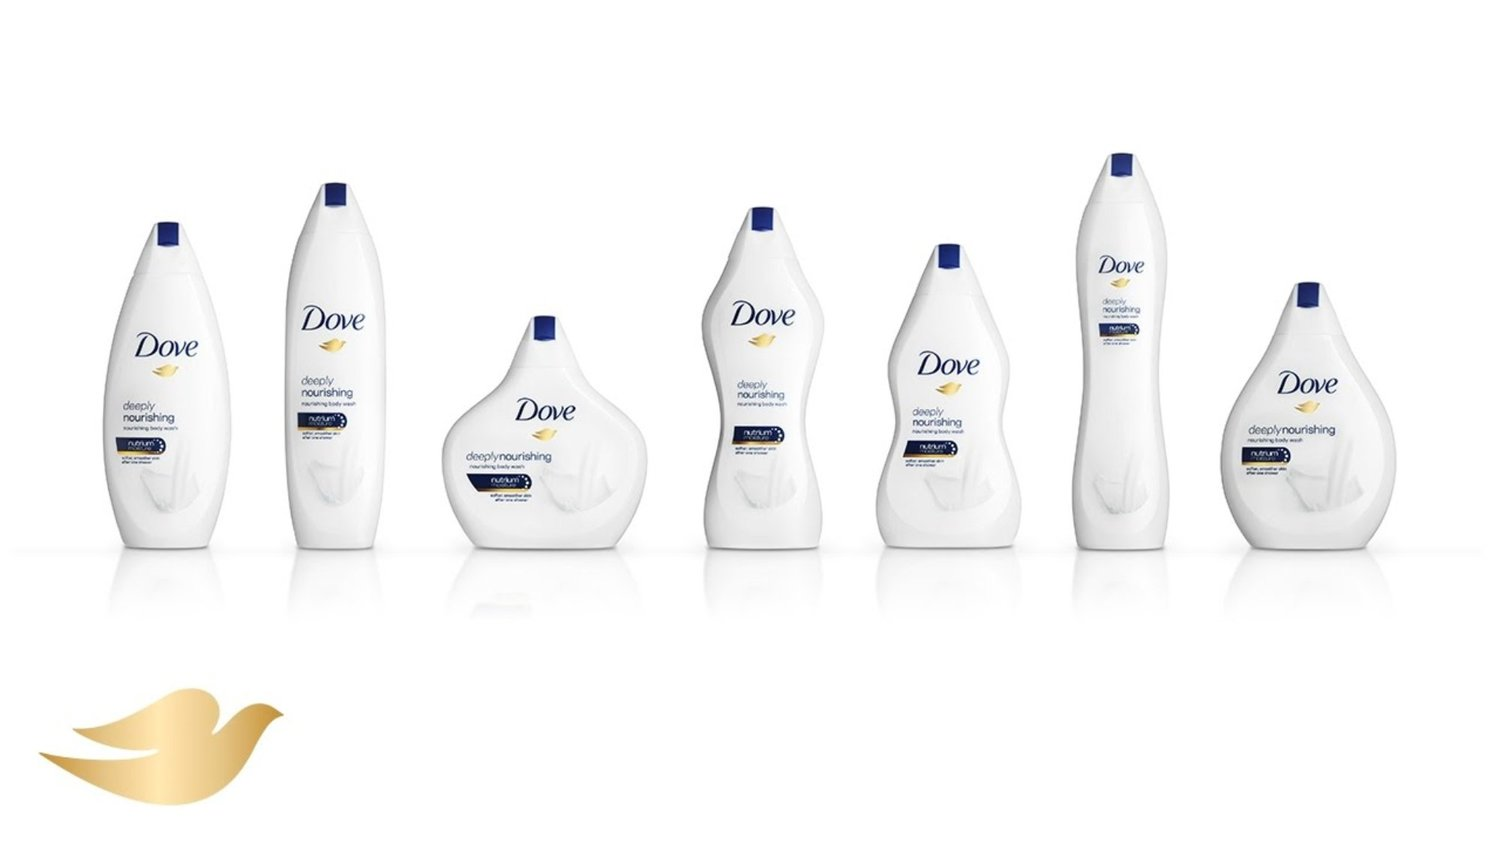 Dove's Ad Blunder Shows the Bar is Set Higher for Marketing to Women